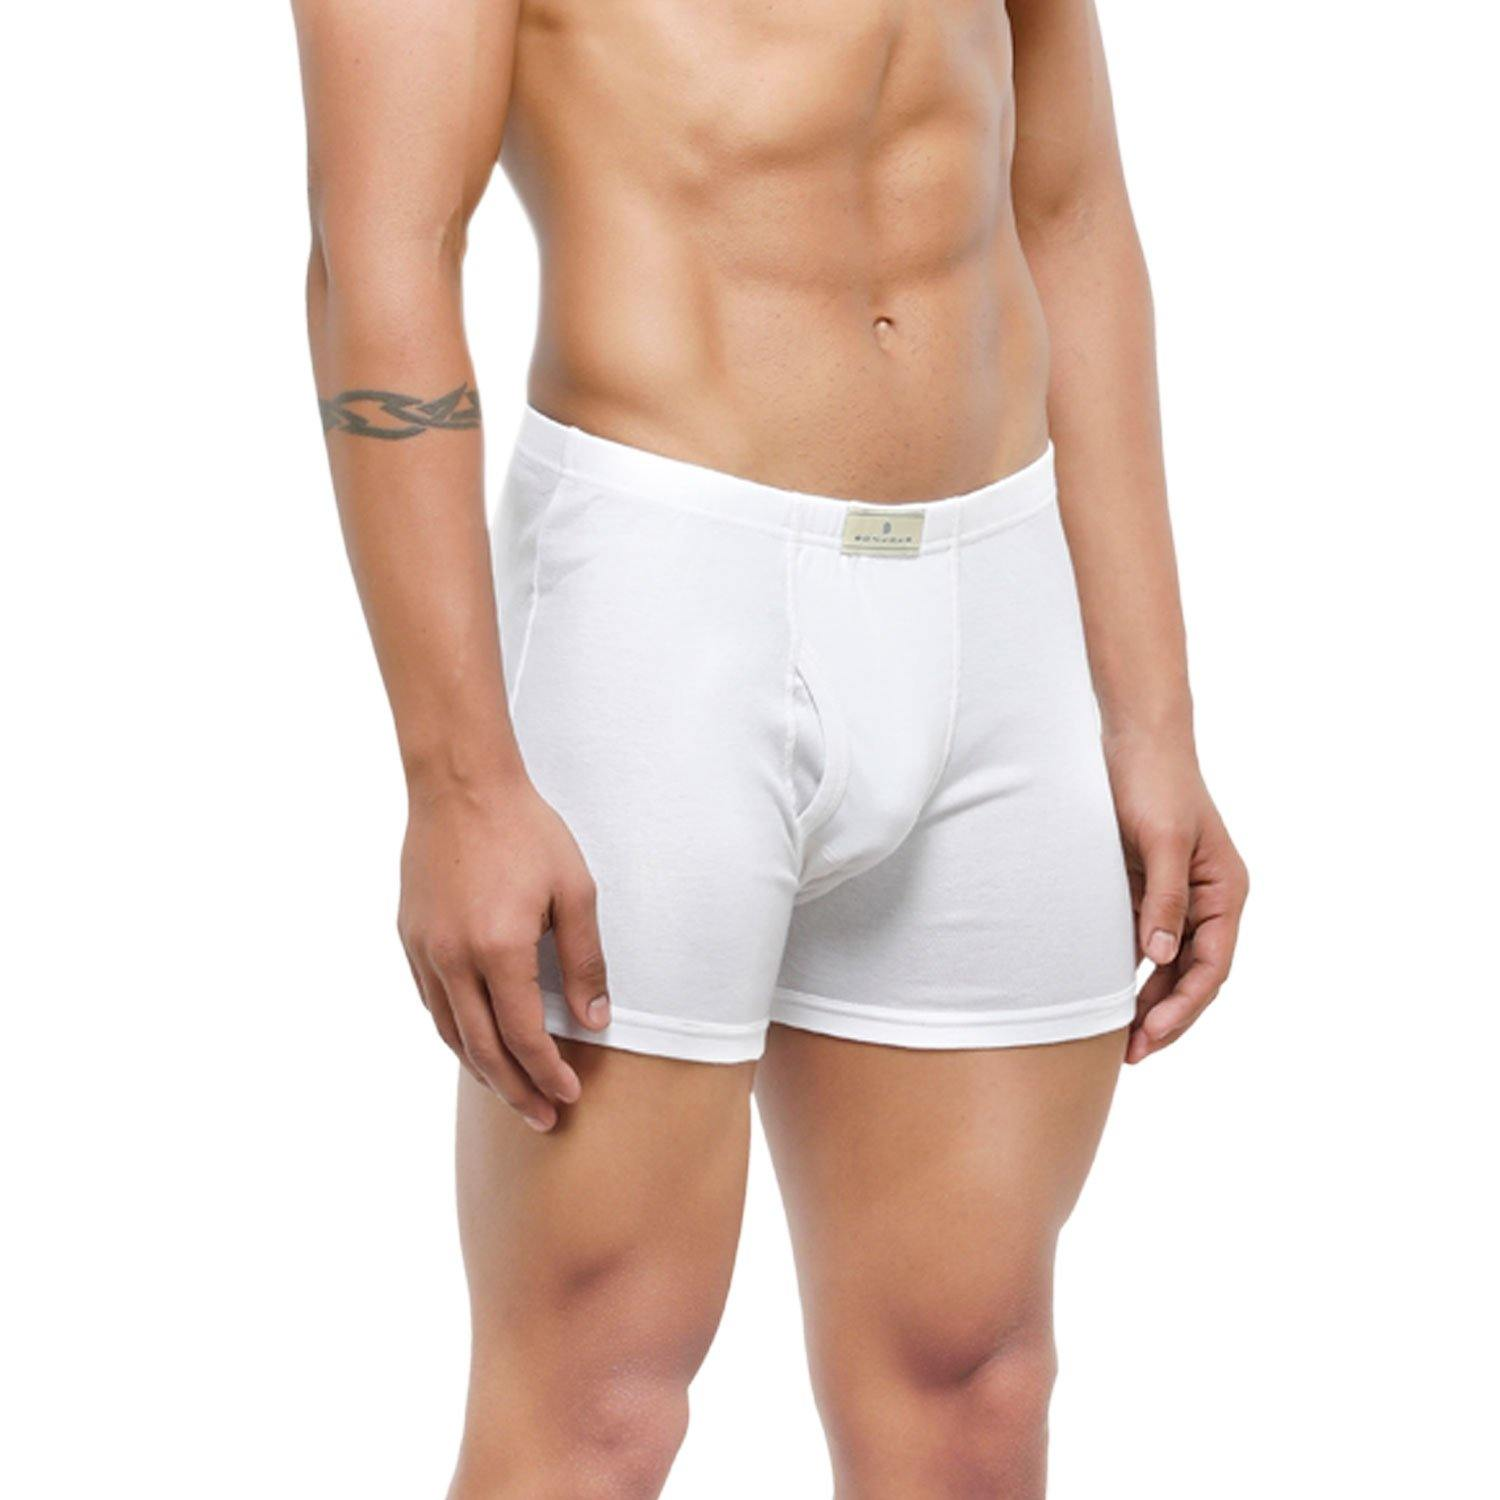 Men's Mid-Rise Classic Cotton Trunks - Pack of 2 - Bonjour Group